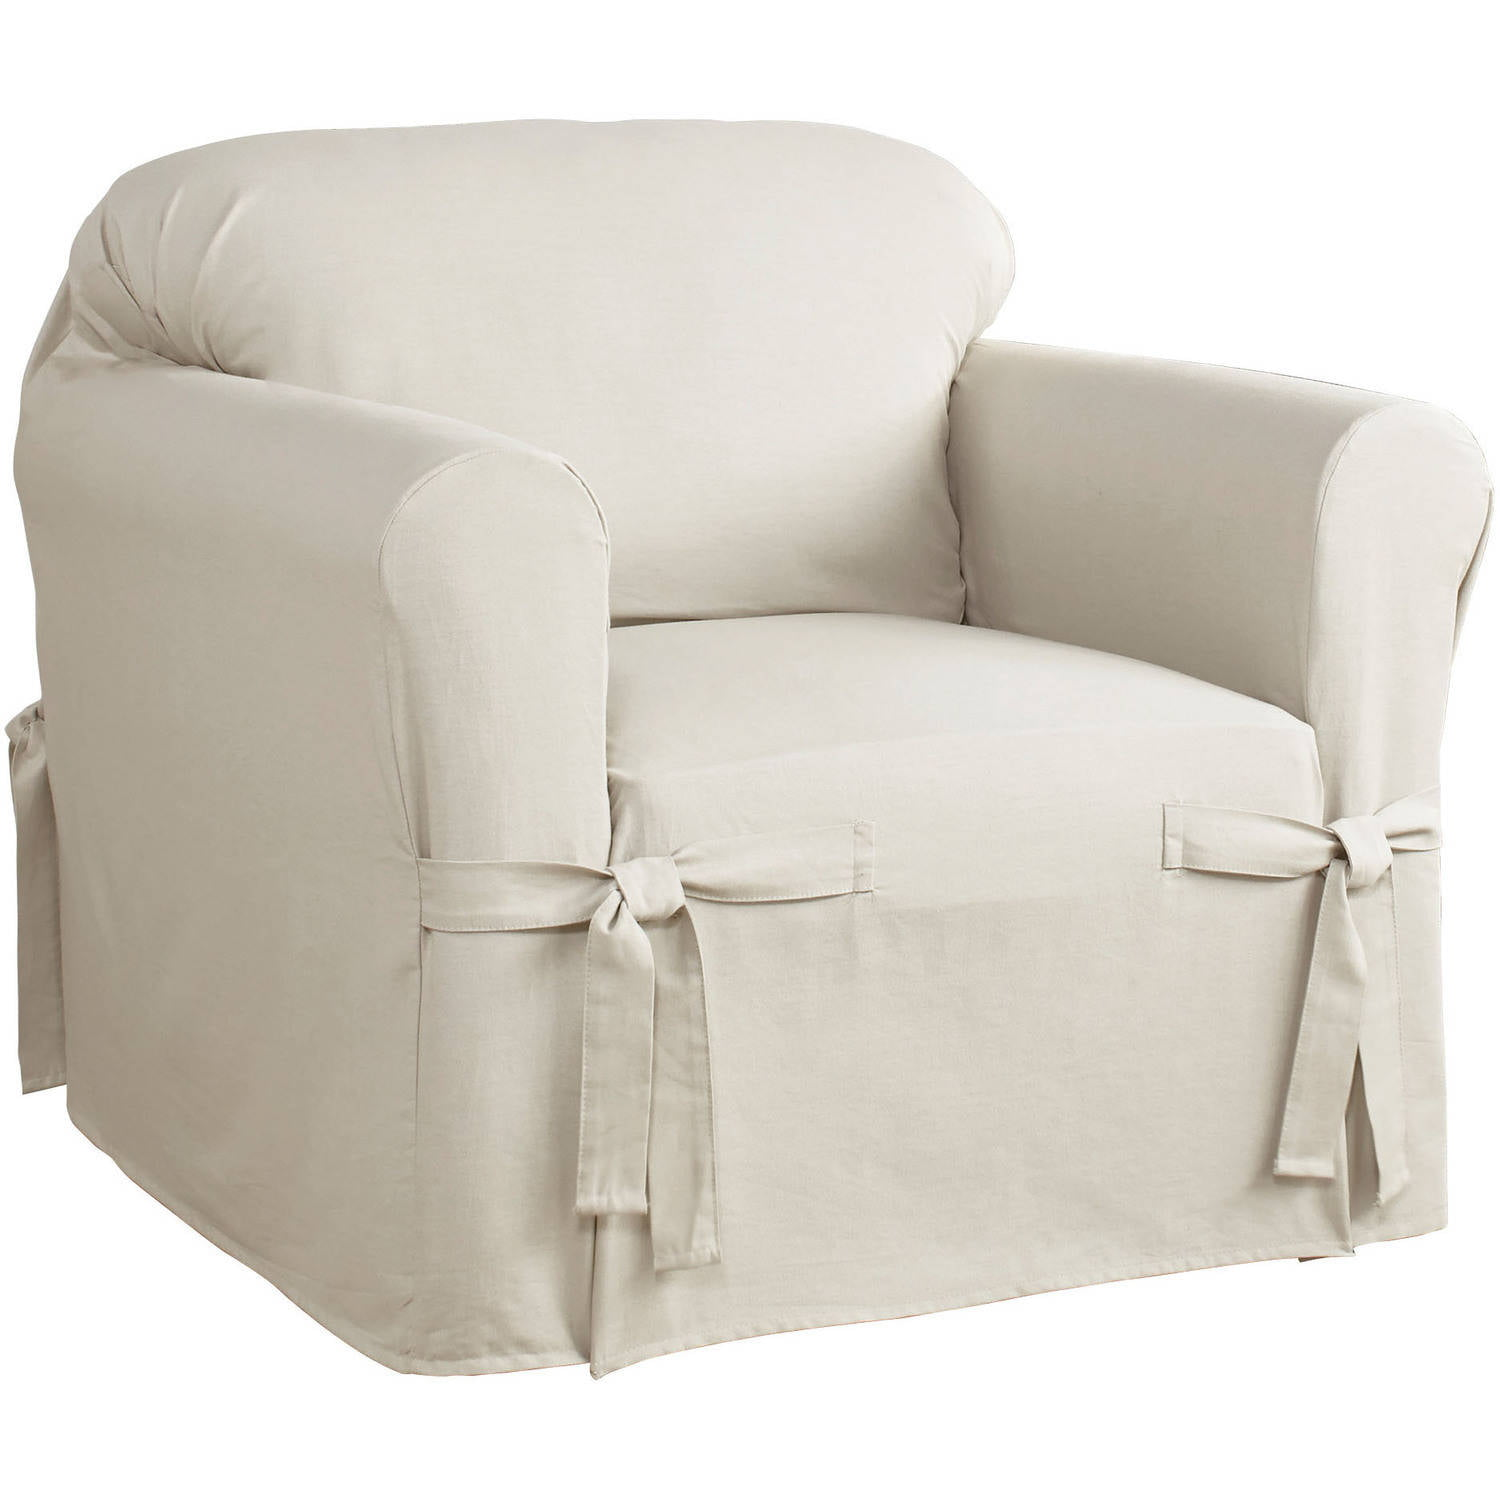 Serta Relaxed Fit Cotton Duck Furniture Slipcover Chair 1 Piece Box Cushion Com